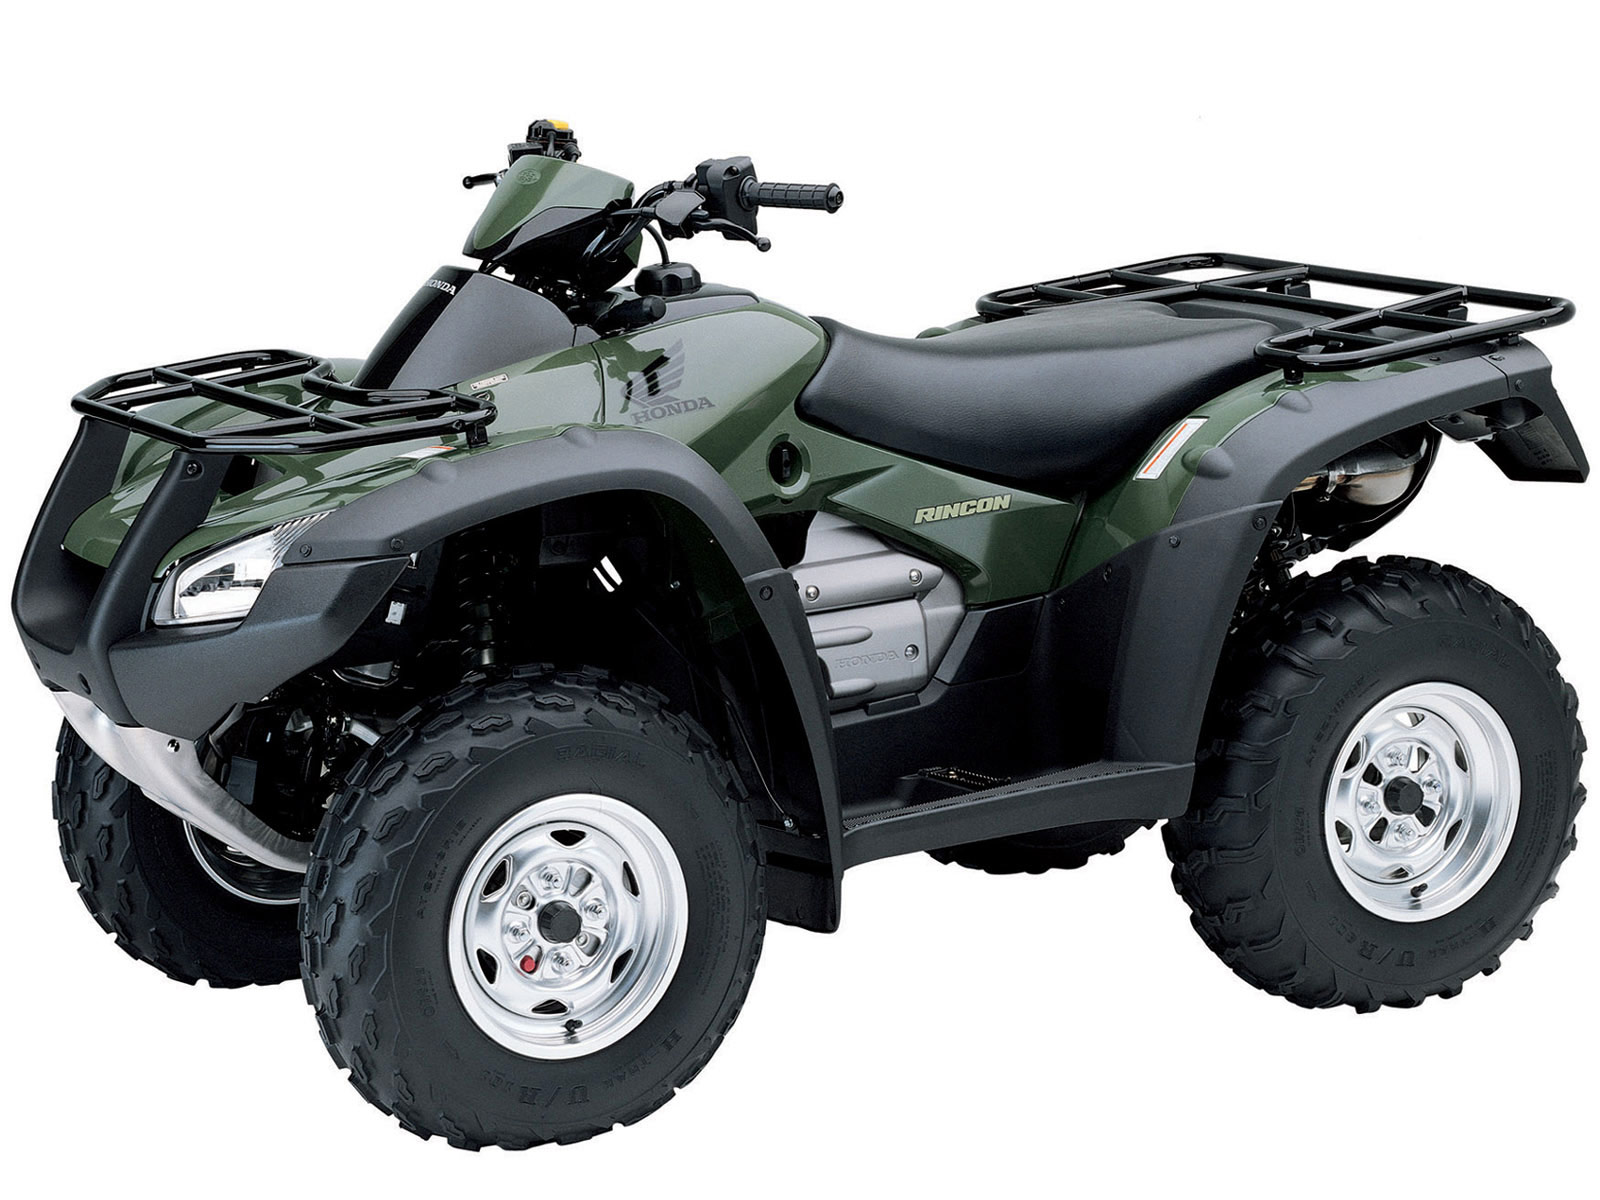 2005 HONDA FourTrax Rincon pictures | ATV accident lawyers